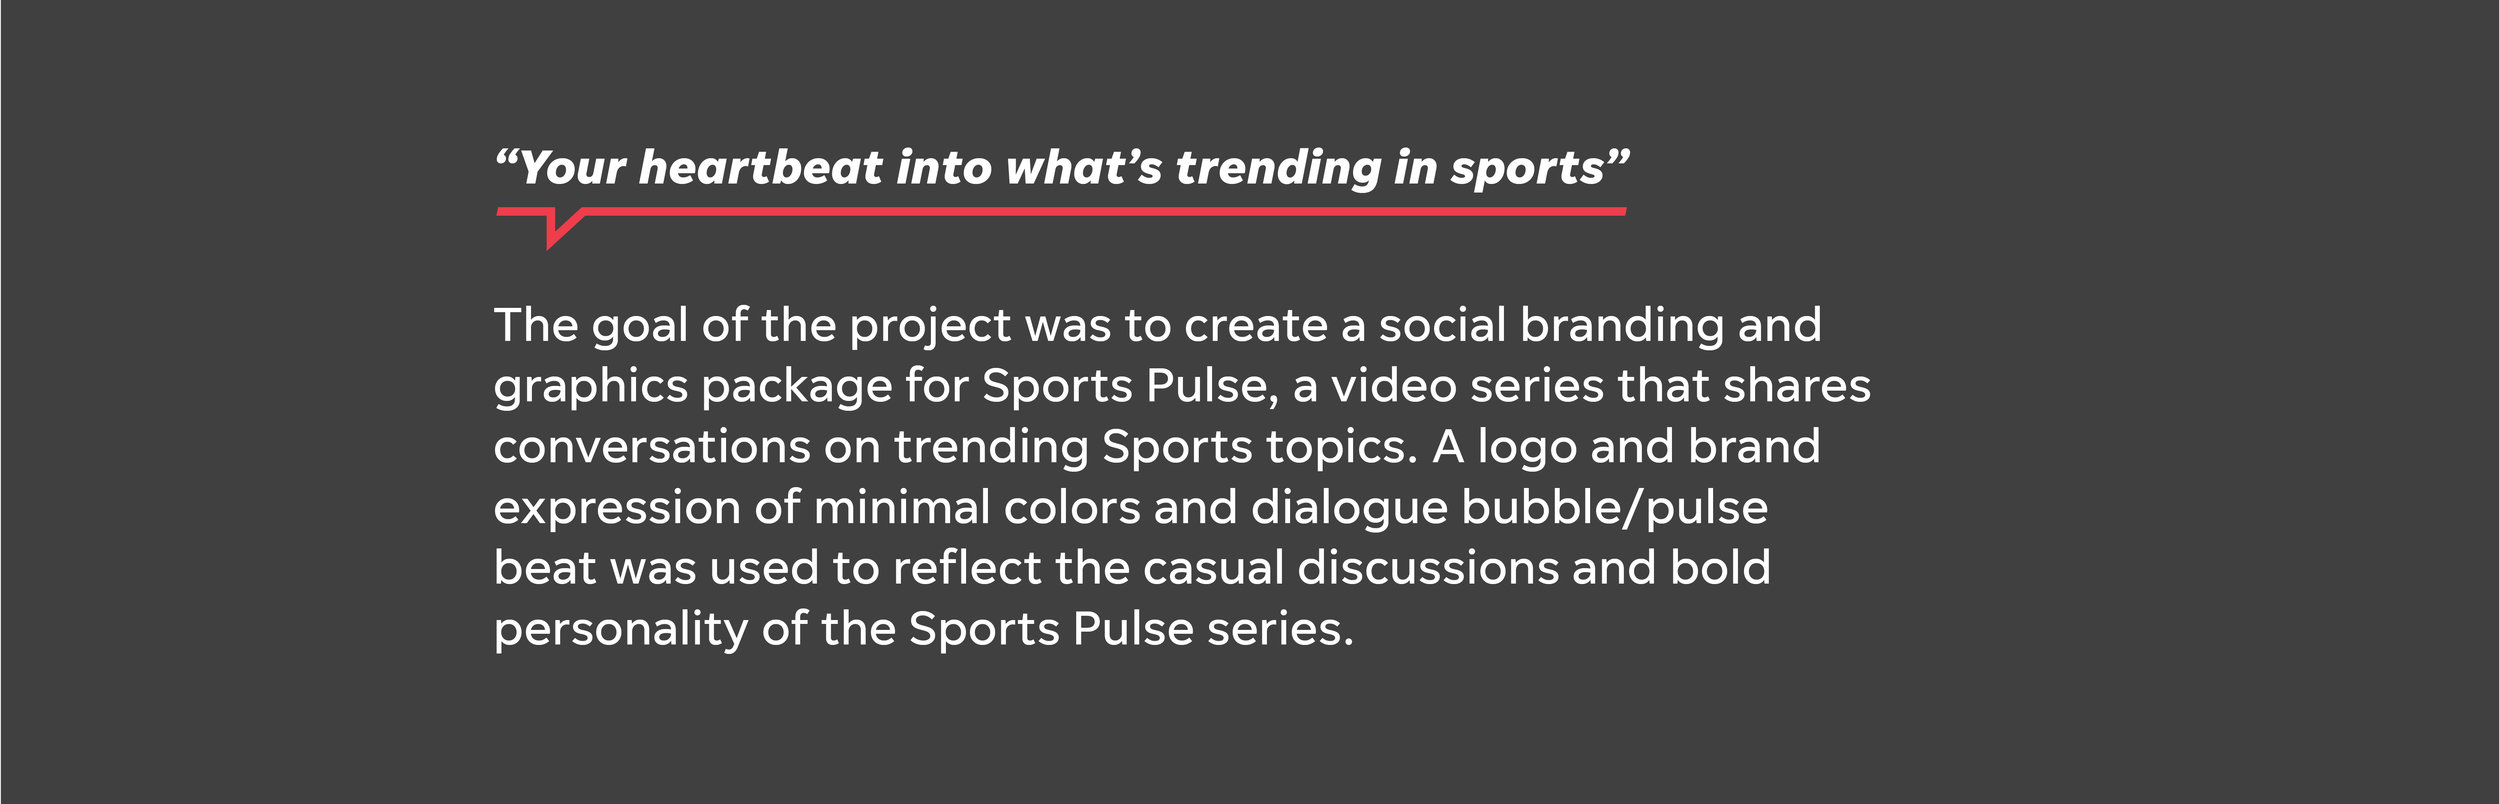 Sports Pulse about.jpg